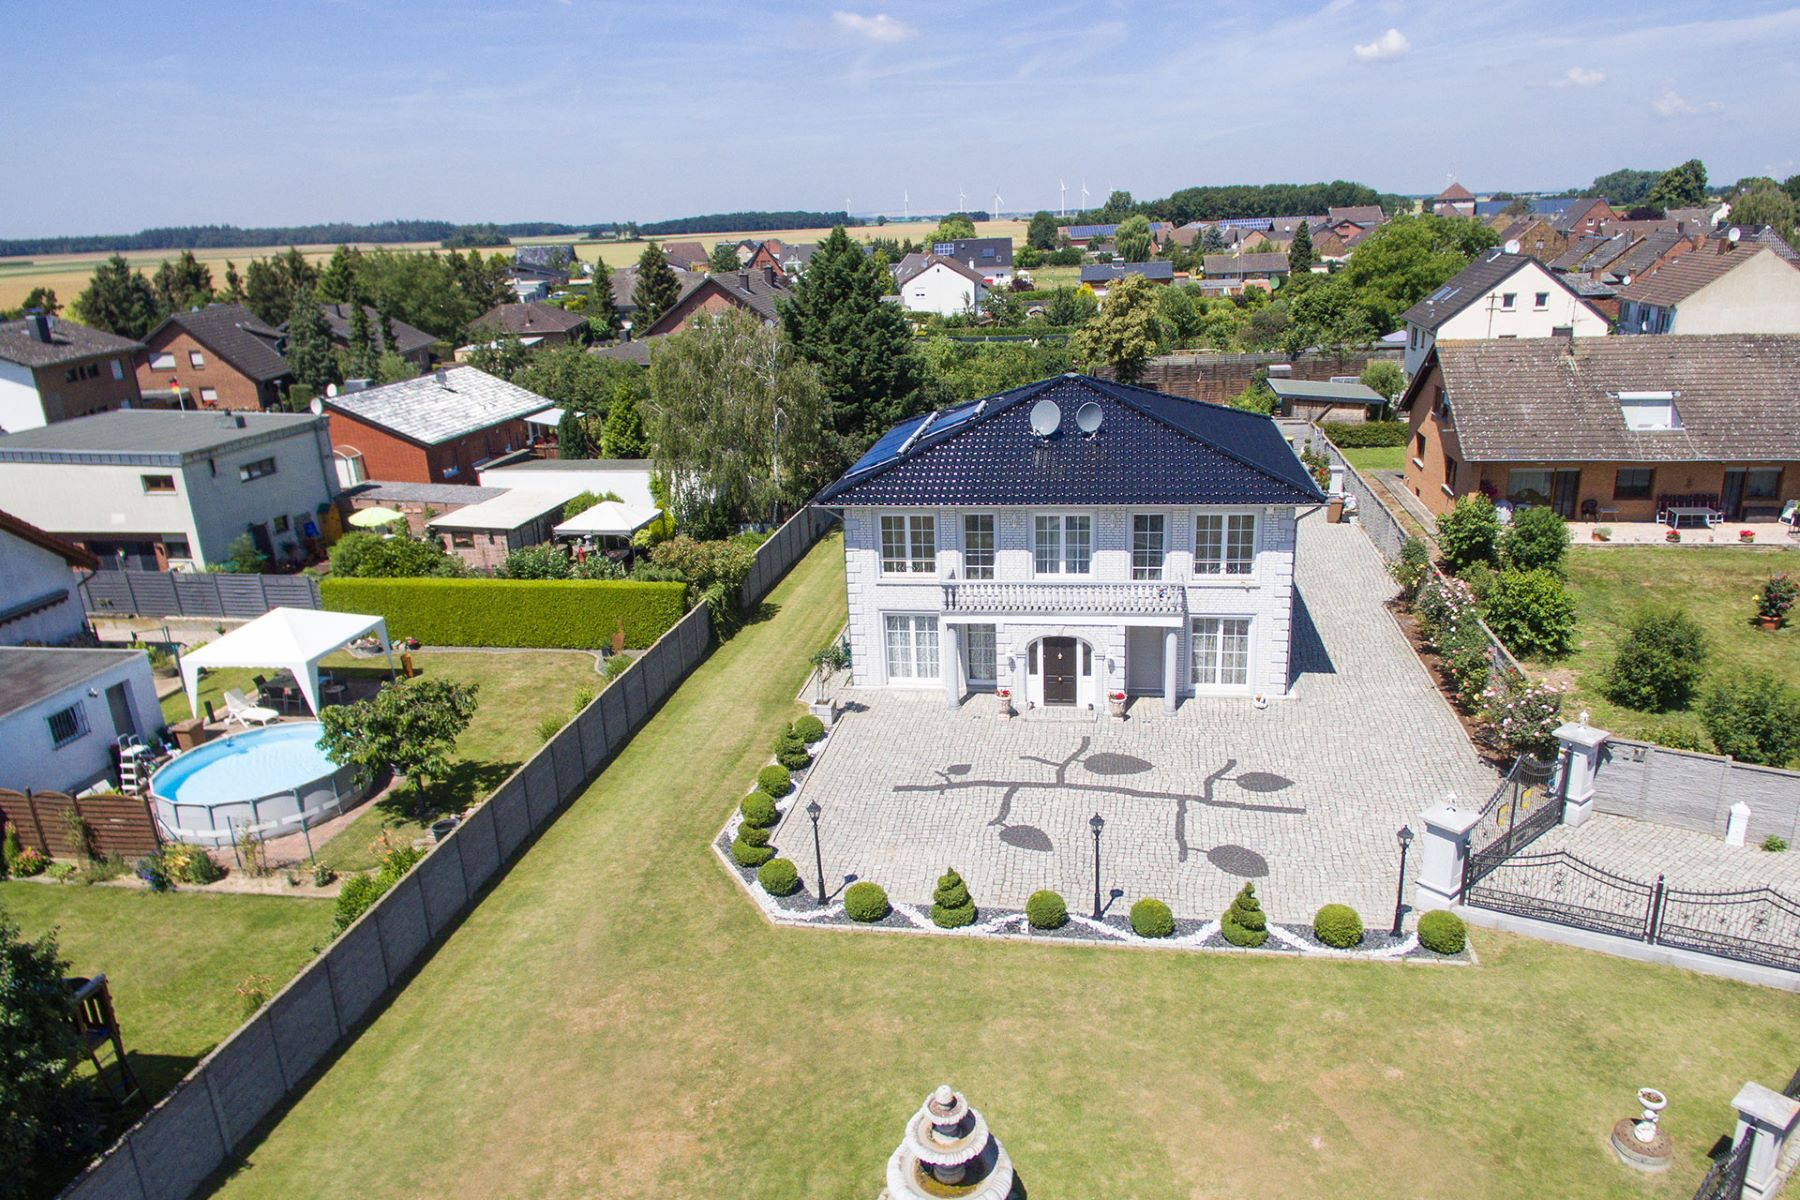 Single Family Homes for Sale at Premium property near Cologne Trierer Strasse 76 Other North Rhine Westphalia, North Rhine Westphalia 53909 Germany